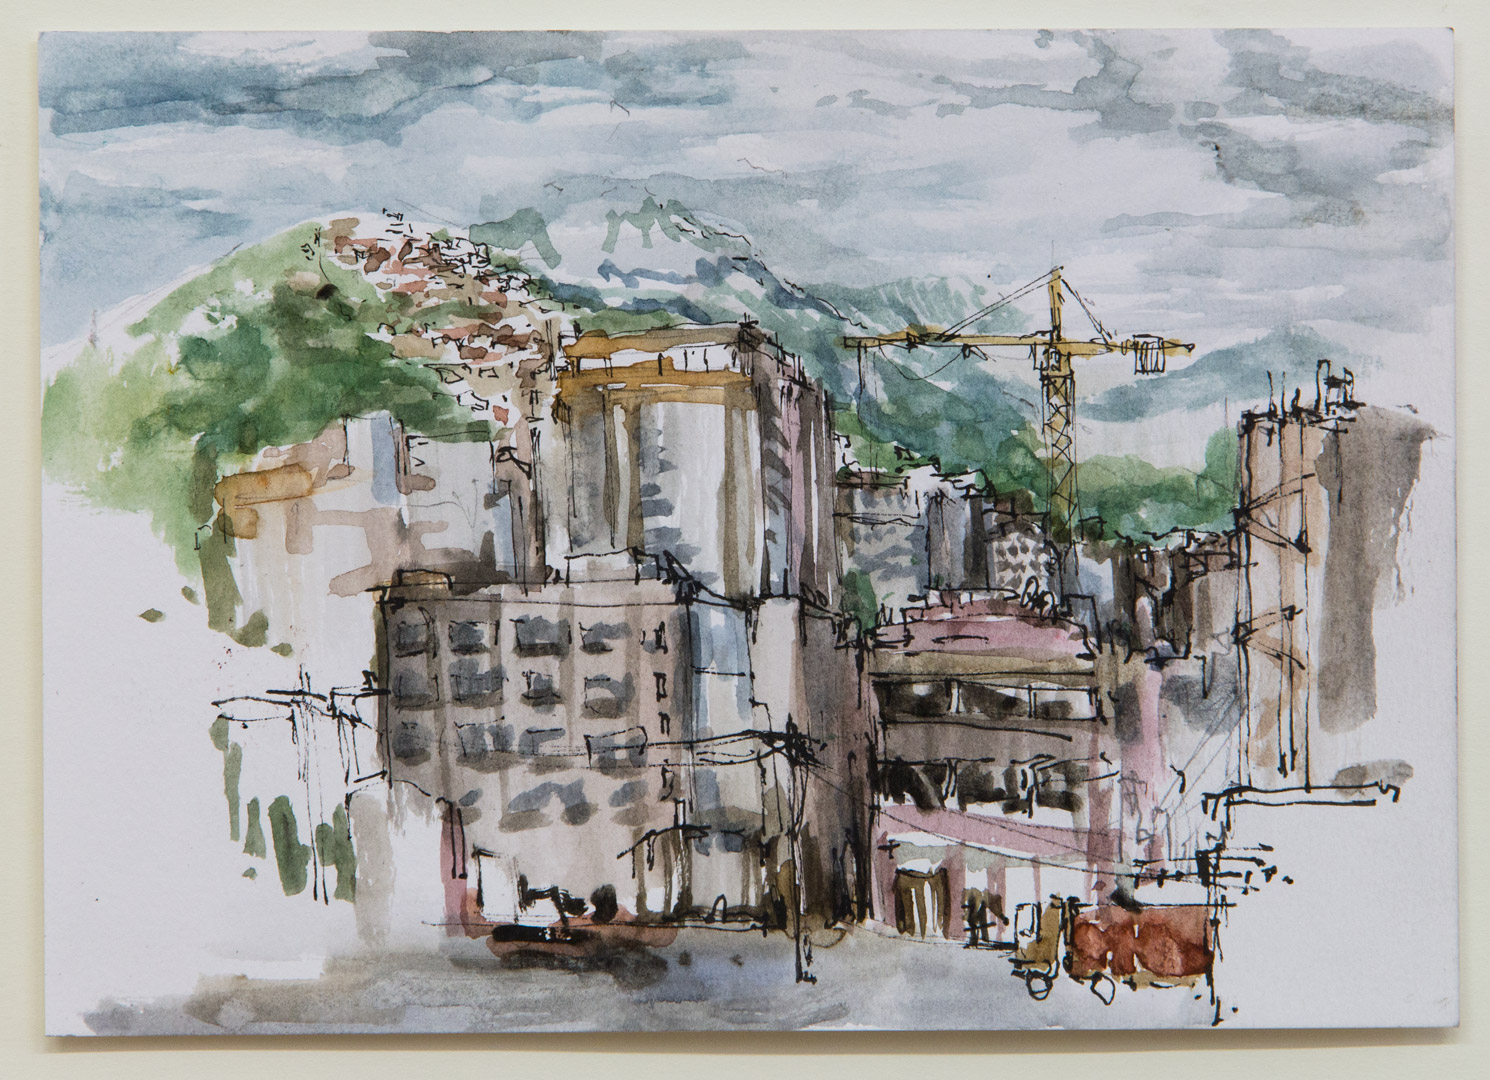 Tetuan; 21 x 15 cm; watercolour, ink and pencil on paper; 2018